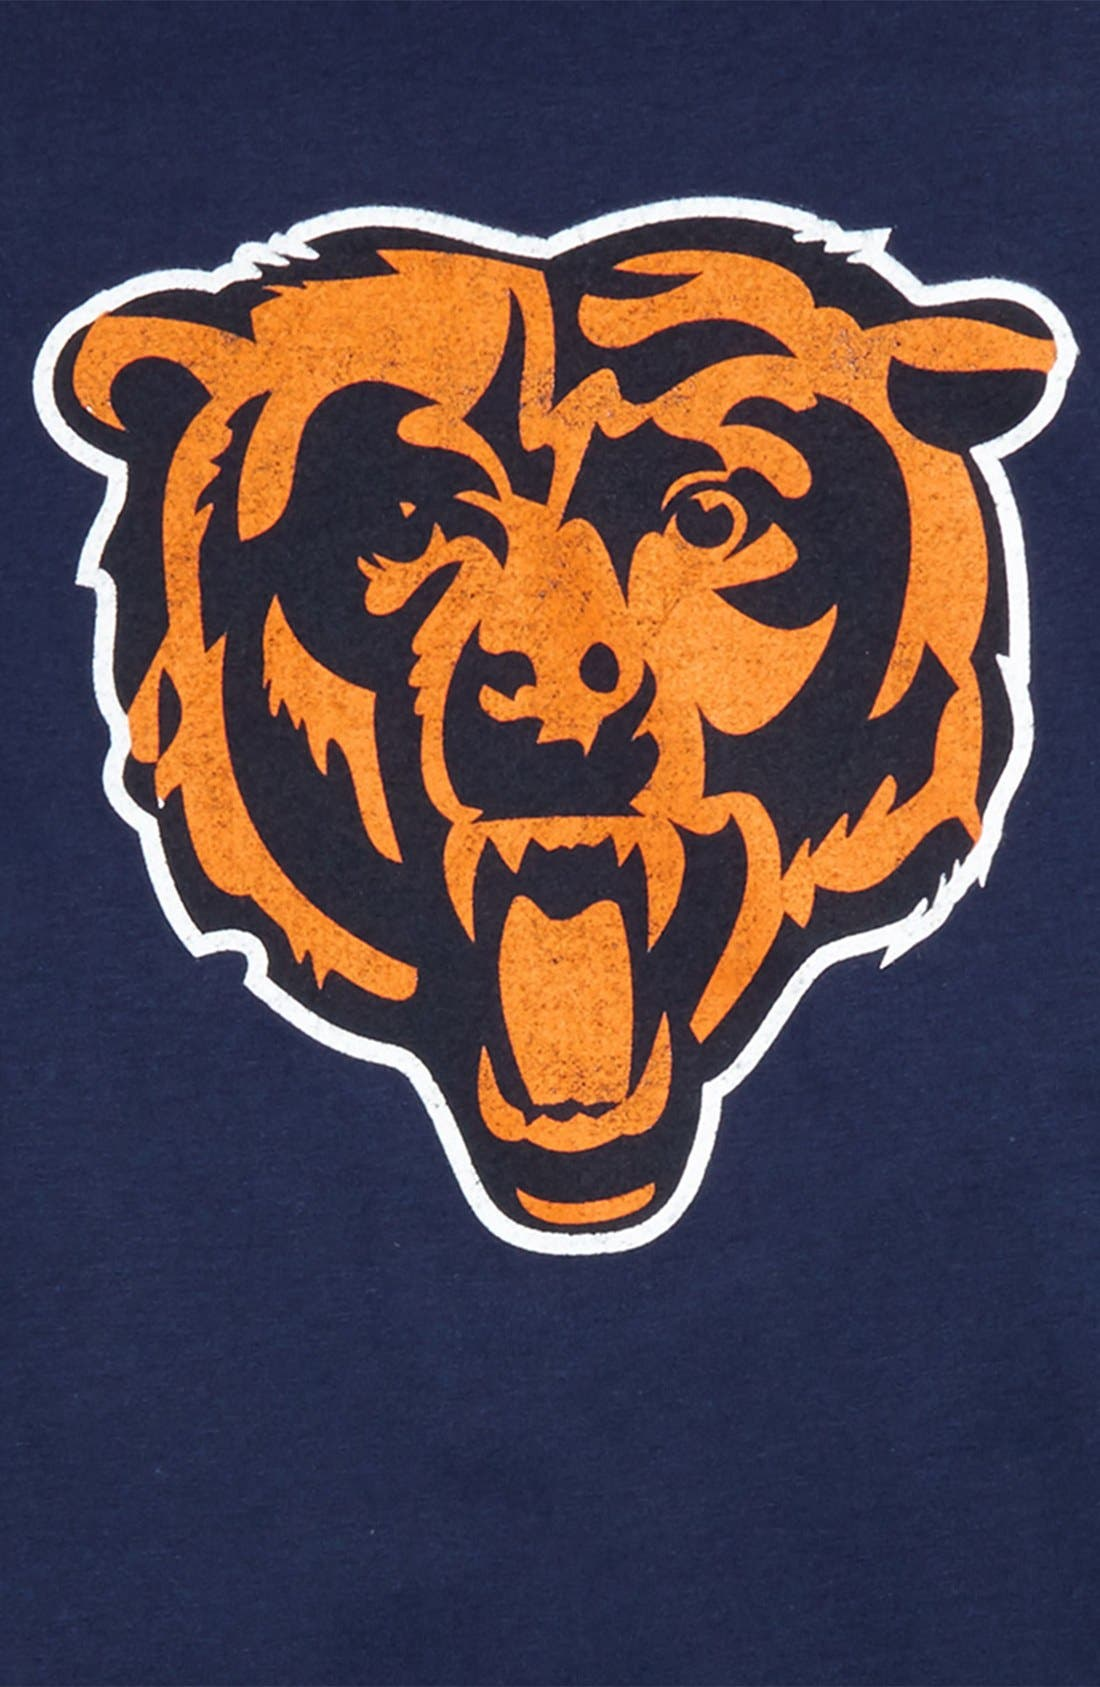 'NFL - Chicago Bears' Distressed Logo Graphic T-Shirt,                             Alternate thumbnail 4, color,                             410